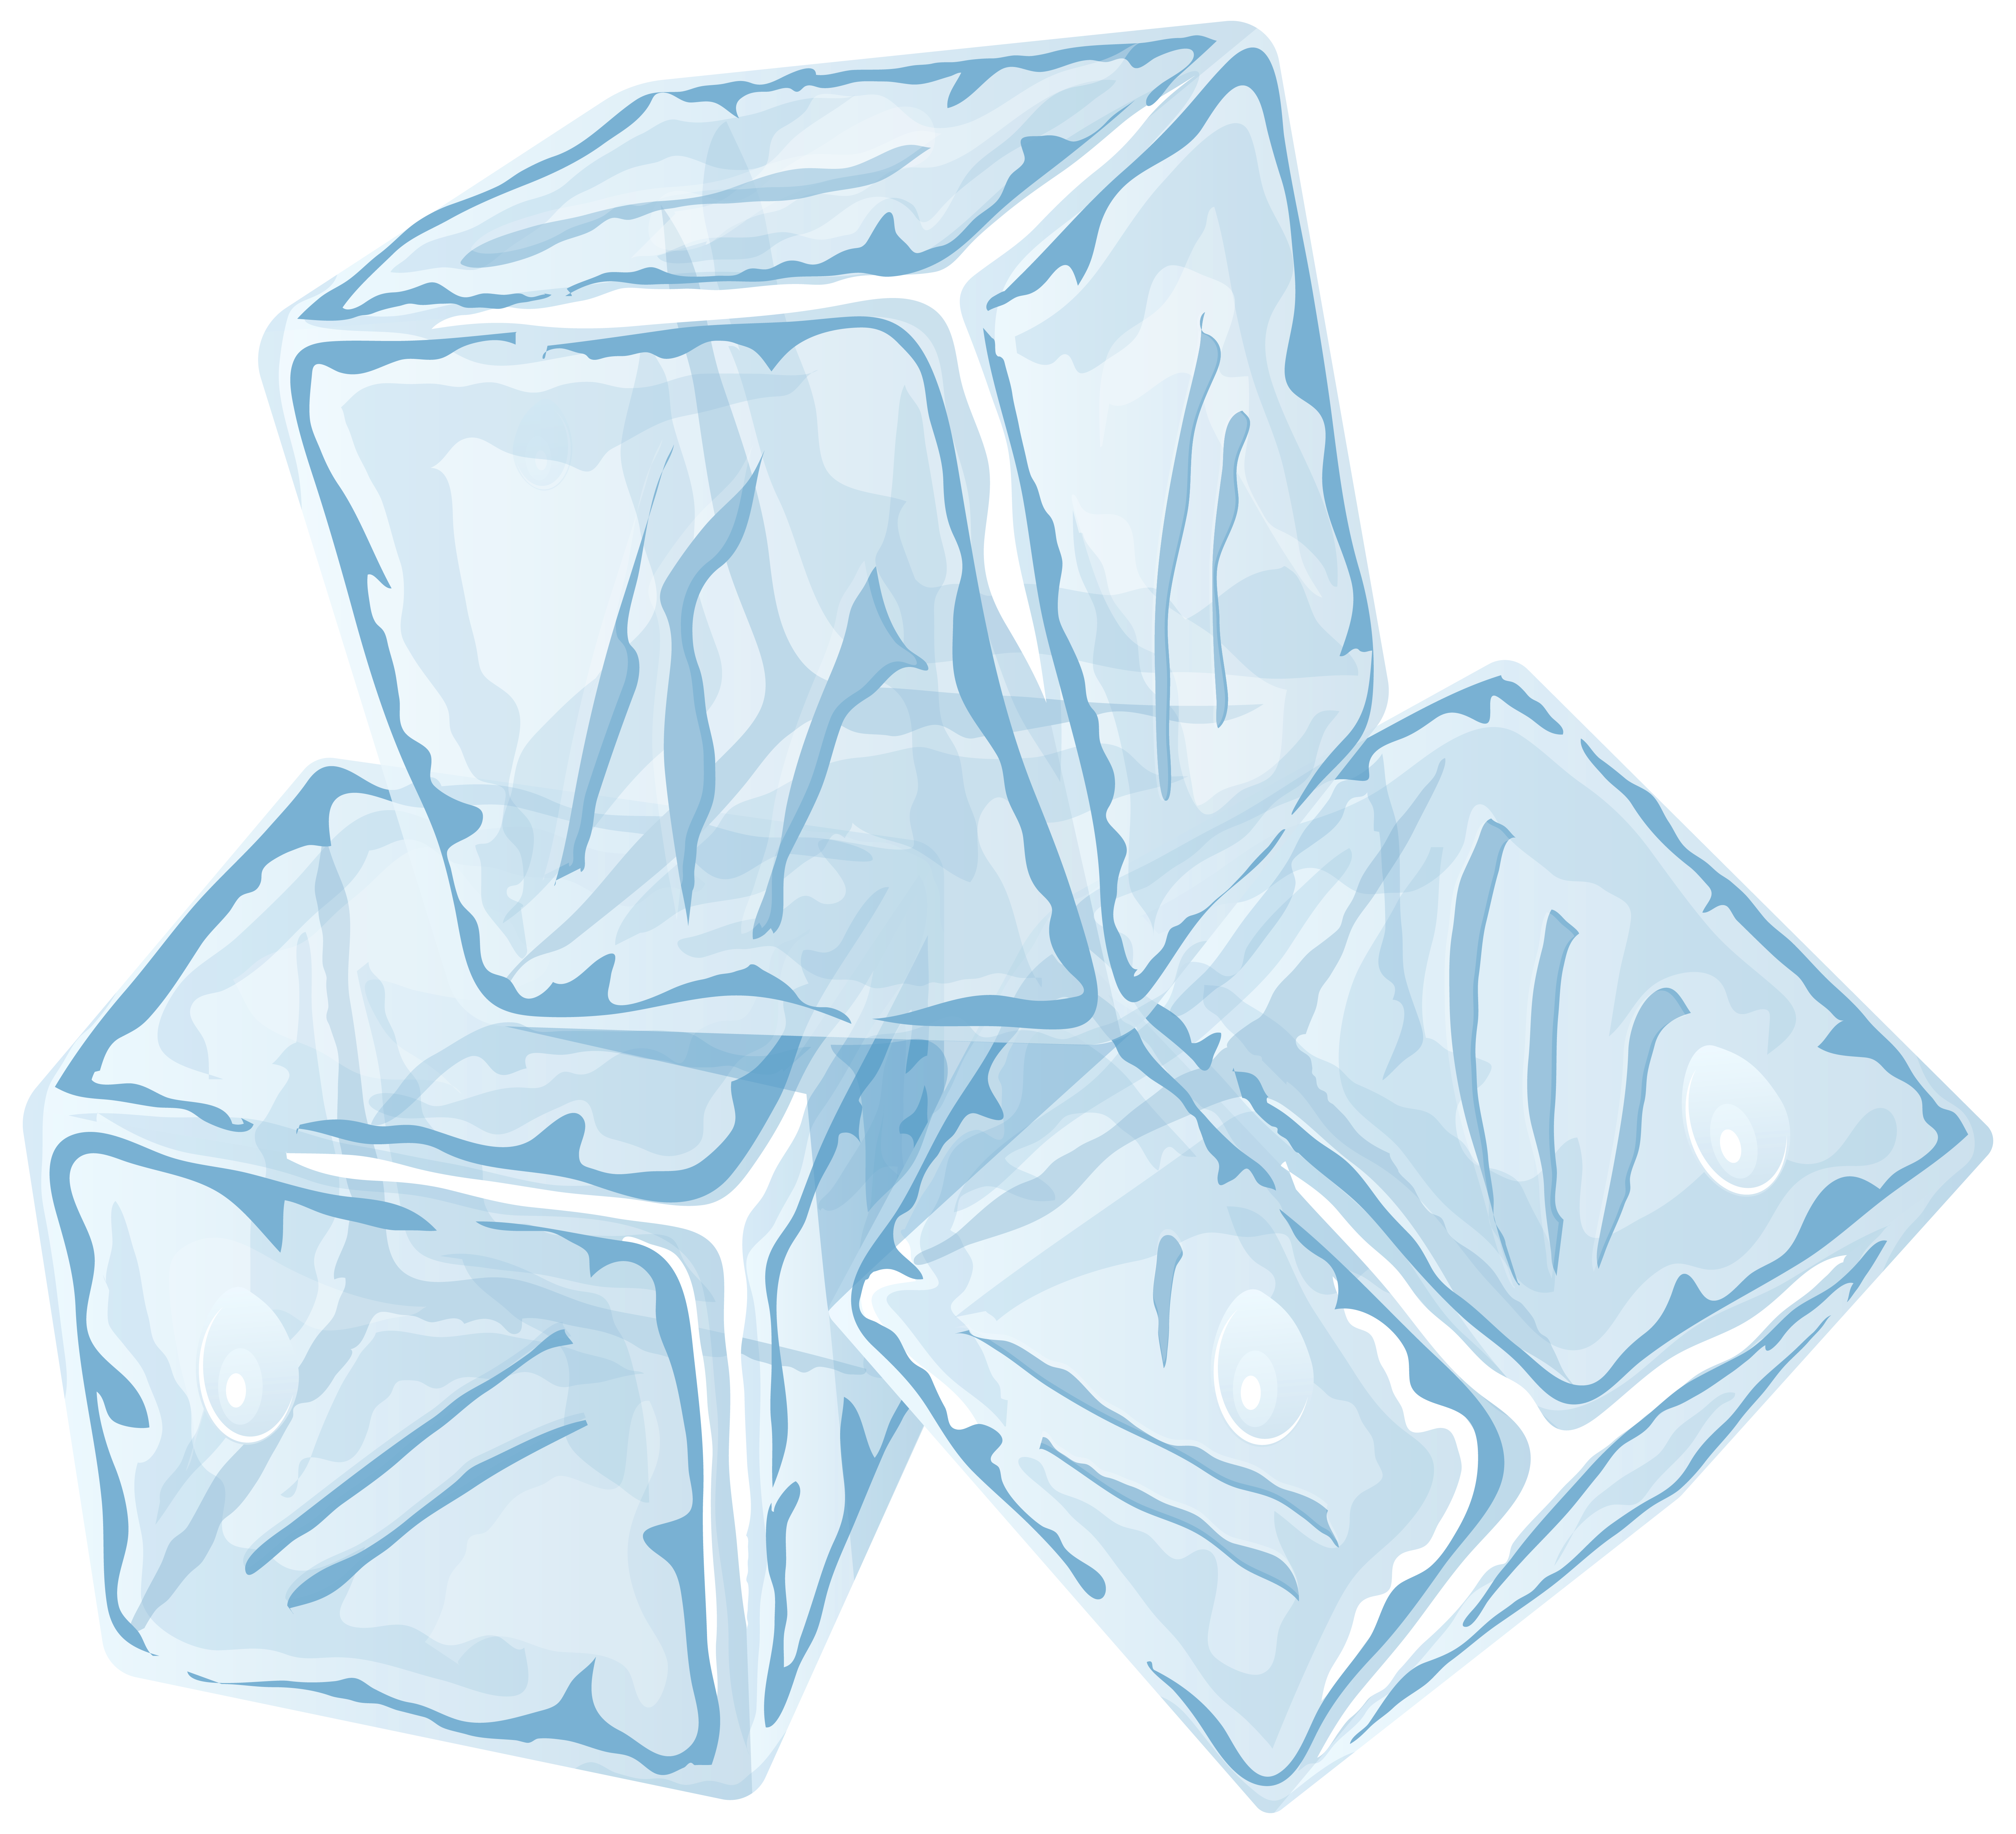 Ice clipart ice box. Cubes png clip art